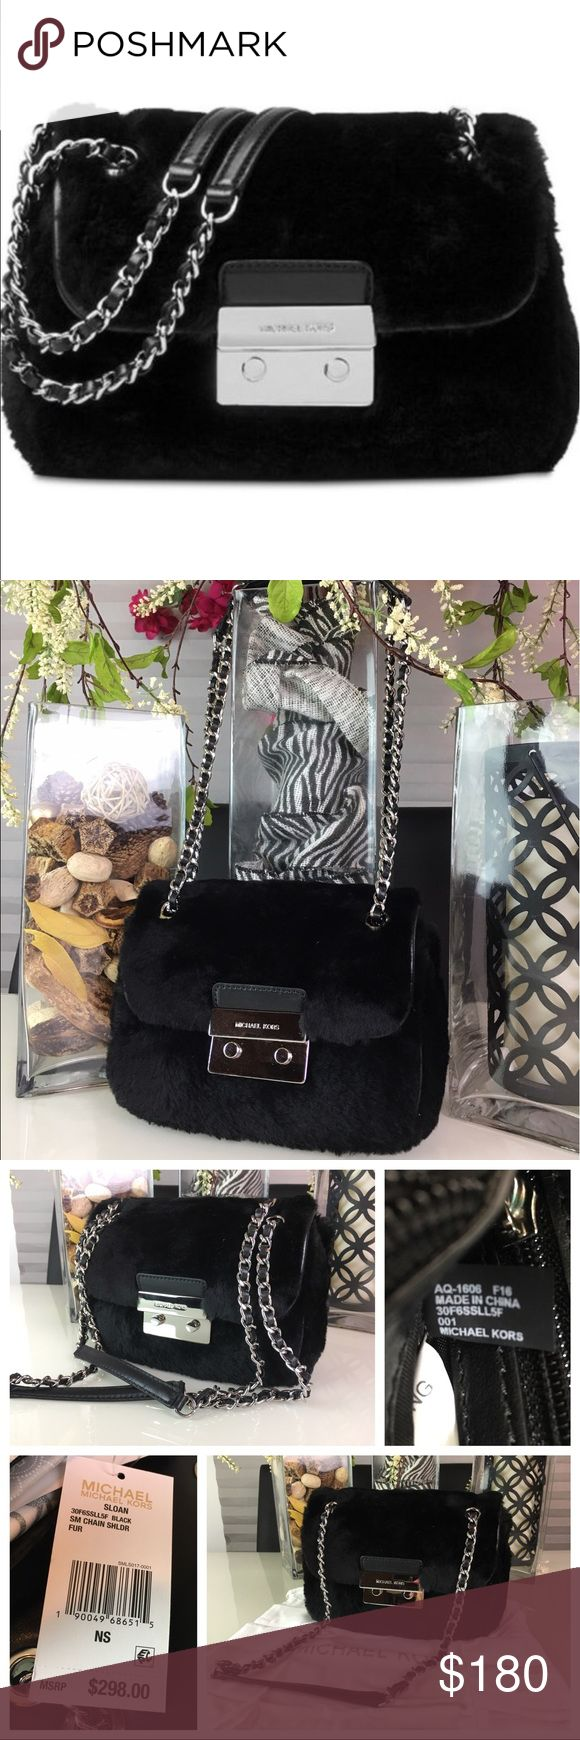 """Micheal Kors Sloan Small Chain Shoulder Bag Micheal Kors 💯 % Authentic Brand New Sloan Small Chain Shoulder Bag in Black Color. Dyed, whole shearing lamb fur, lining, polyester. Imported. Small sized bag, 8""""W X 5 1/2 H X 2 1/2 D. Interior features center zip compartment, 1 zip pocket, 2 utility pockets & 4credits slots. 24"""" L pull-through strap. Push-lock Closure. Exterior features shiny rhodium-tone hardware & 1 back Snap Pocket. MICHAEL Michael Kors Bags Shoulder Bags"""